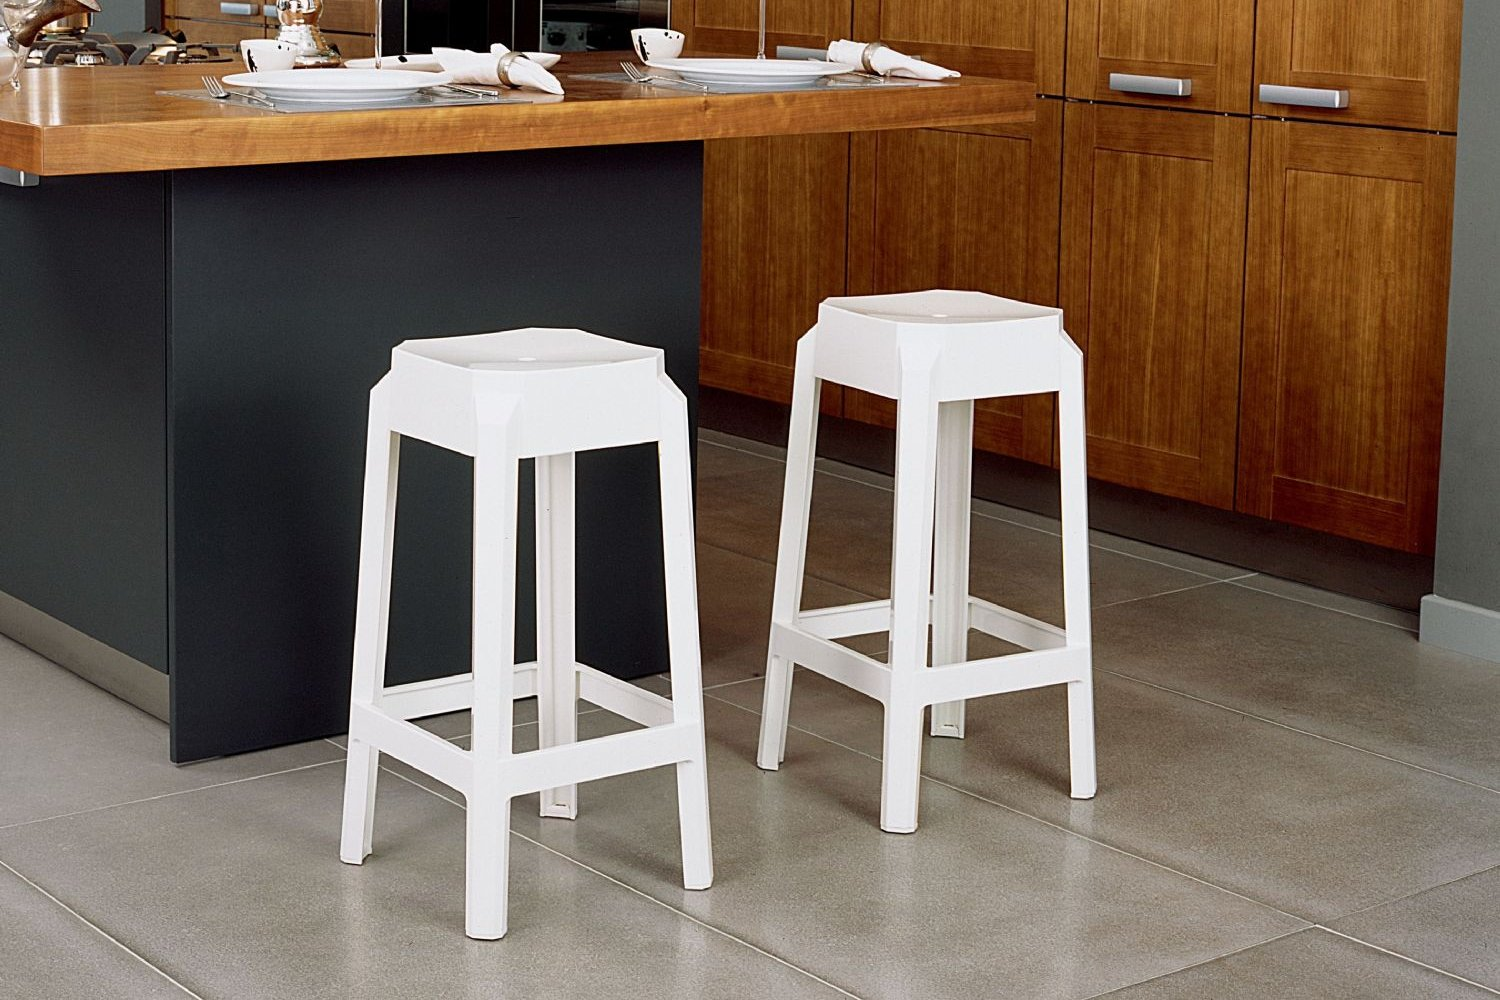 Fox Polycarbonate Counter Stool Transparent Black ISP036-TBLA - 2